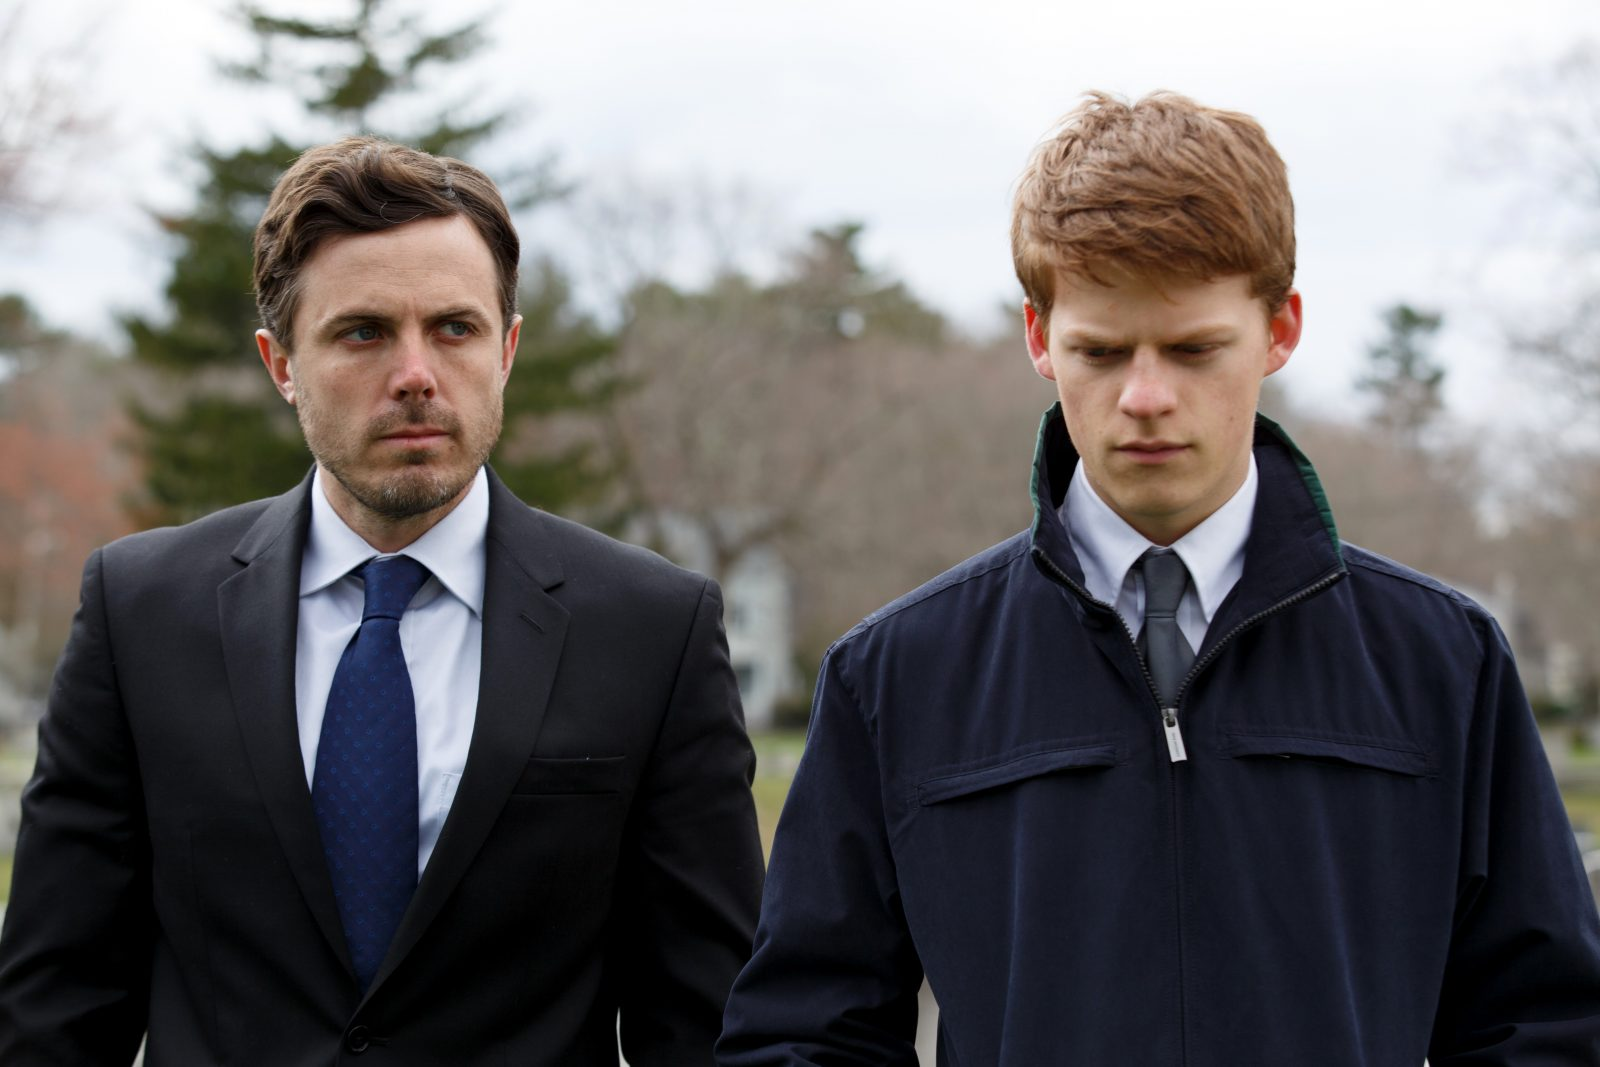 Casey Affleck, left, and Lucas Hedges in 'Manchester By the Sea,' a film that comes in for praise in a new book by Ann Hornaday. (Claire Folger, Amazon Studios-Roadside Attractions)